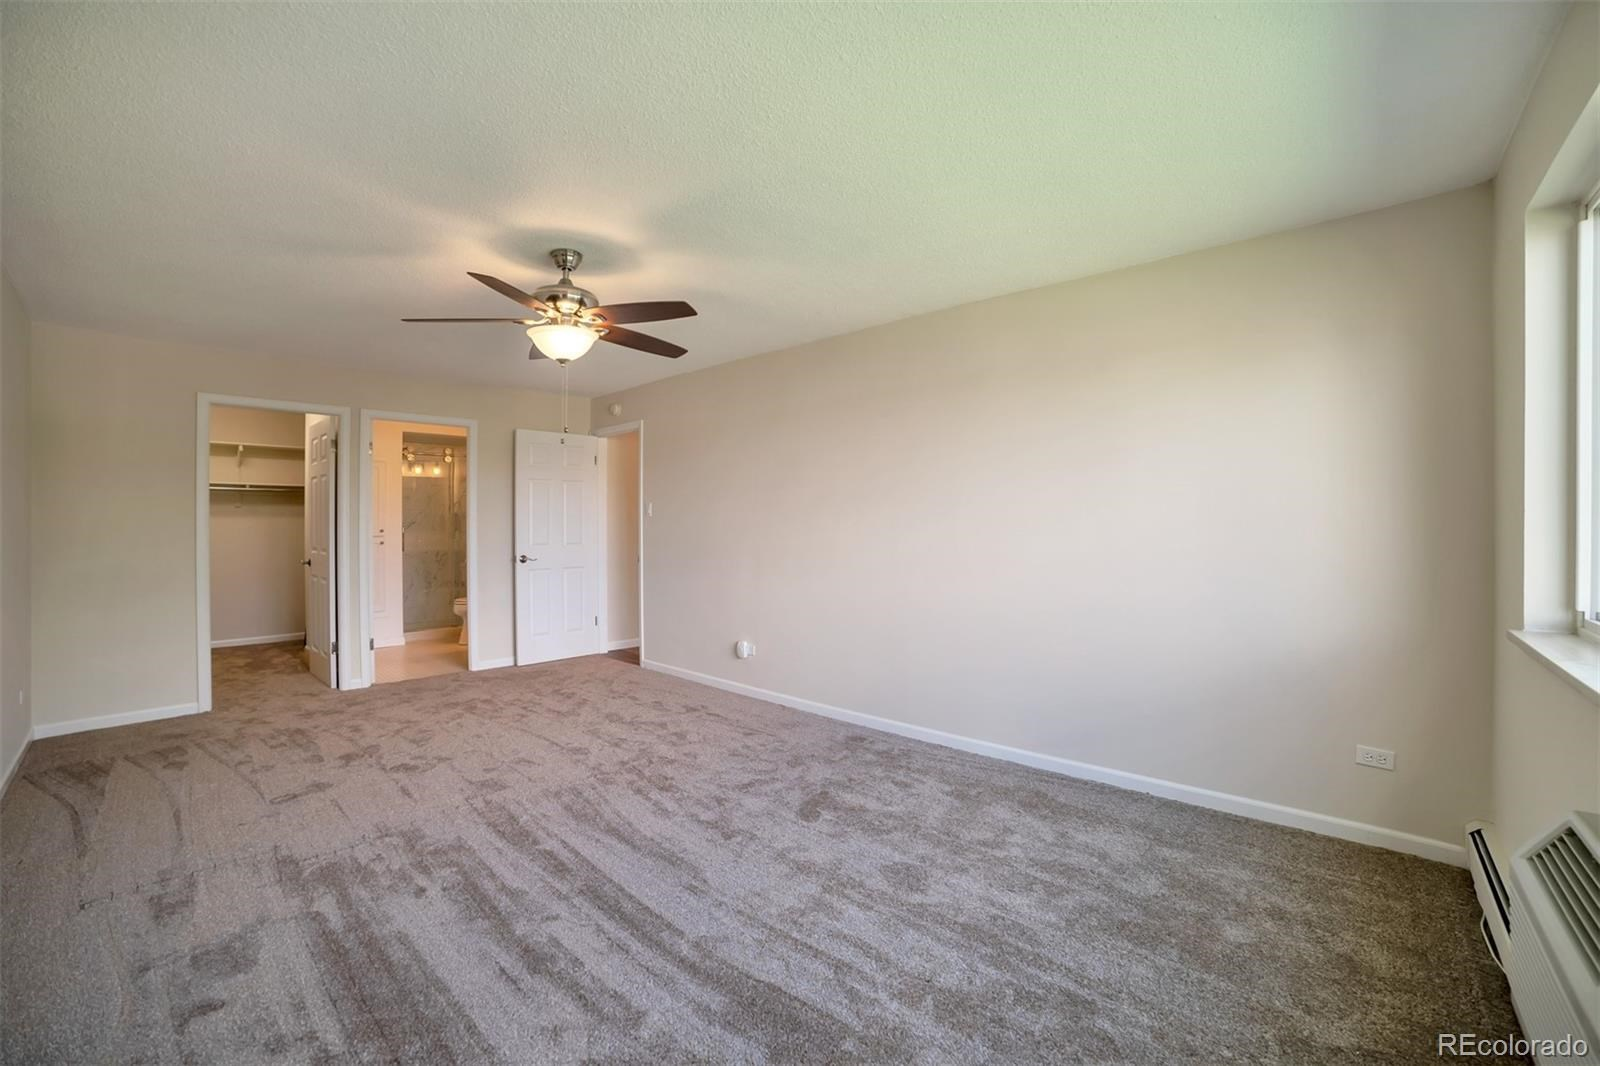 MLS# 7079914 - 12 - 645 S Alton Way #3C, Denver, CO 80247